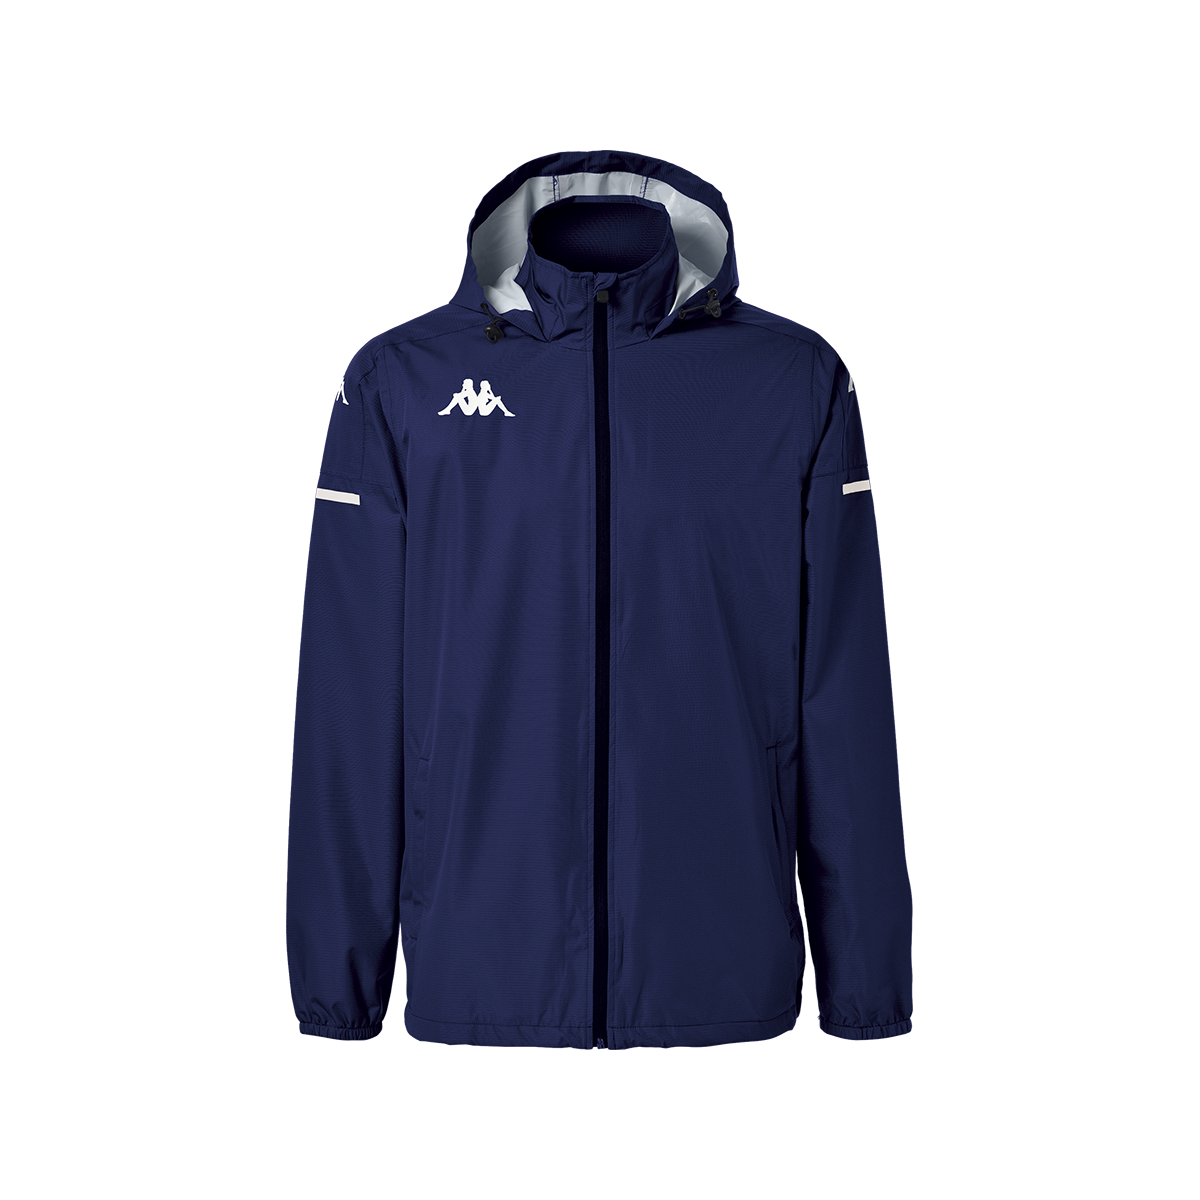 Kappa Adverzip Pro 4 Training Rain Jacket -Blue Marine/White